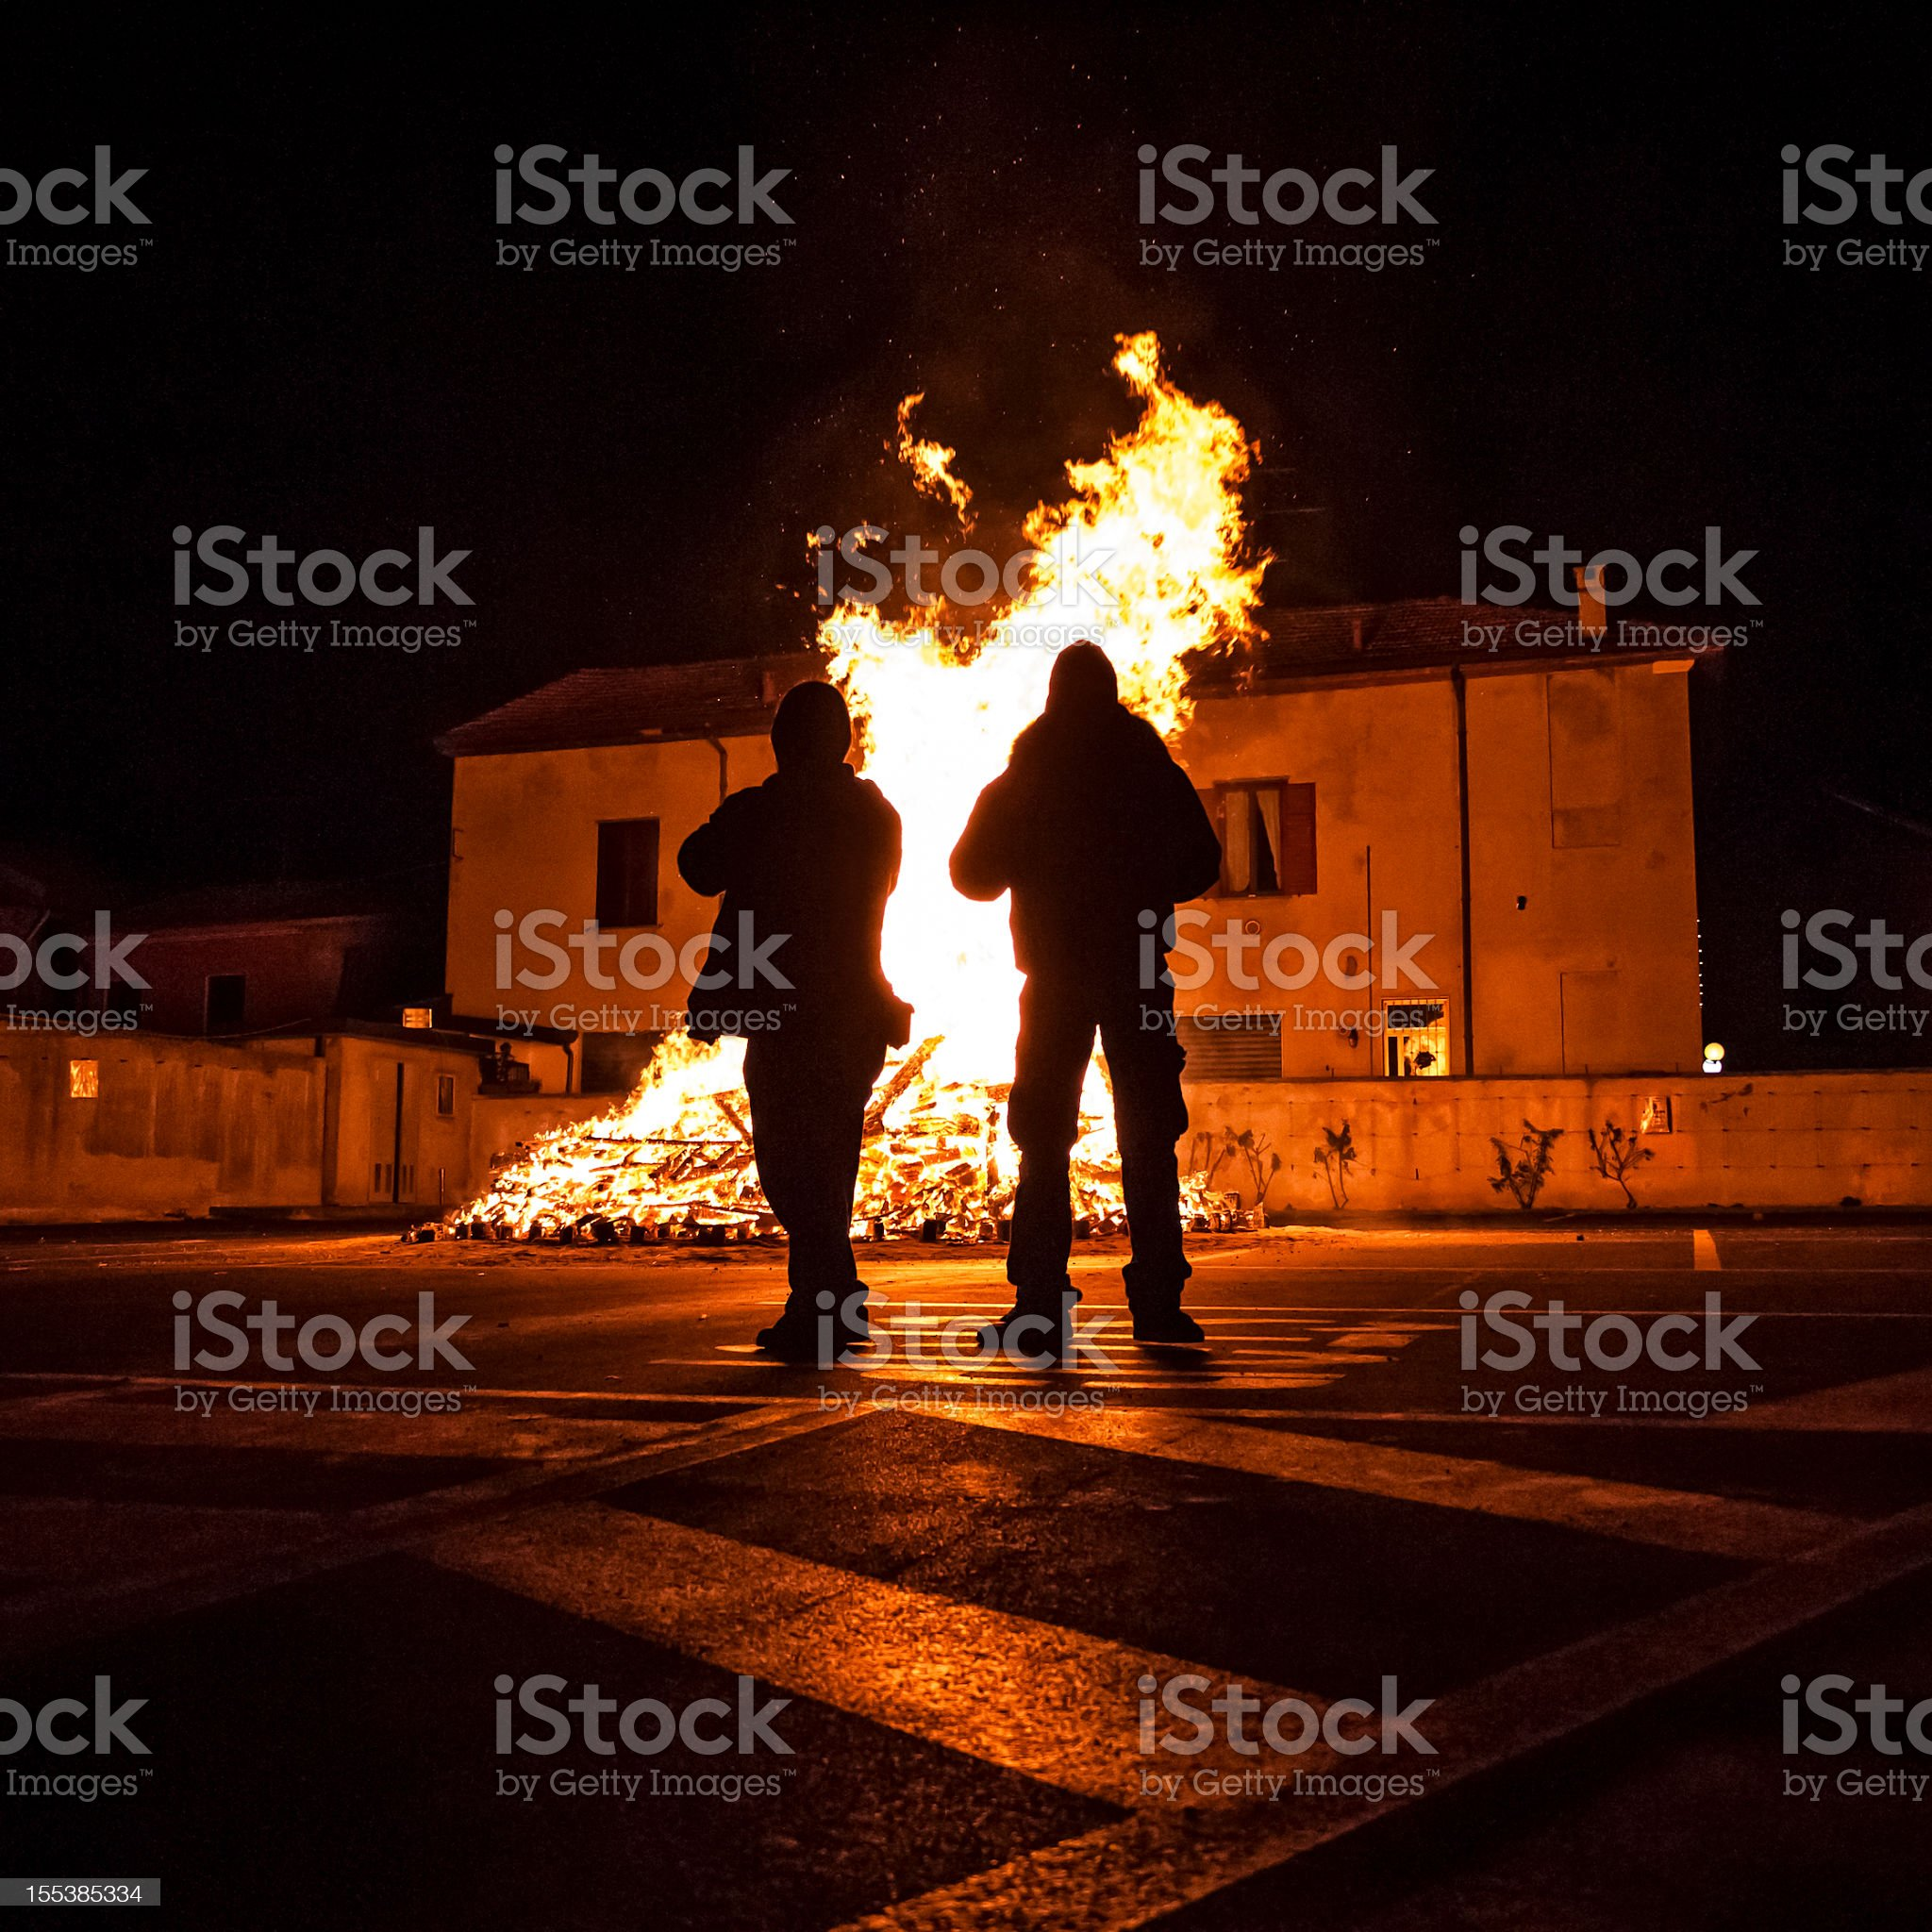 People Silhouette Against Bonfire royalty-free stock photo